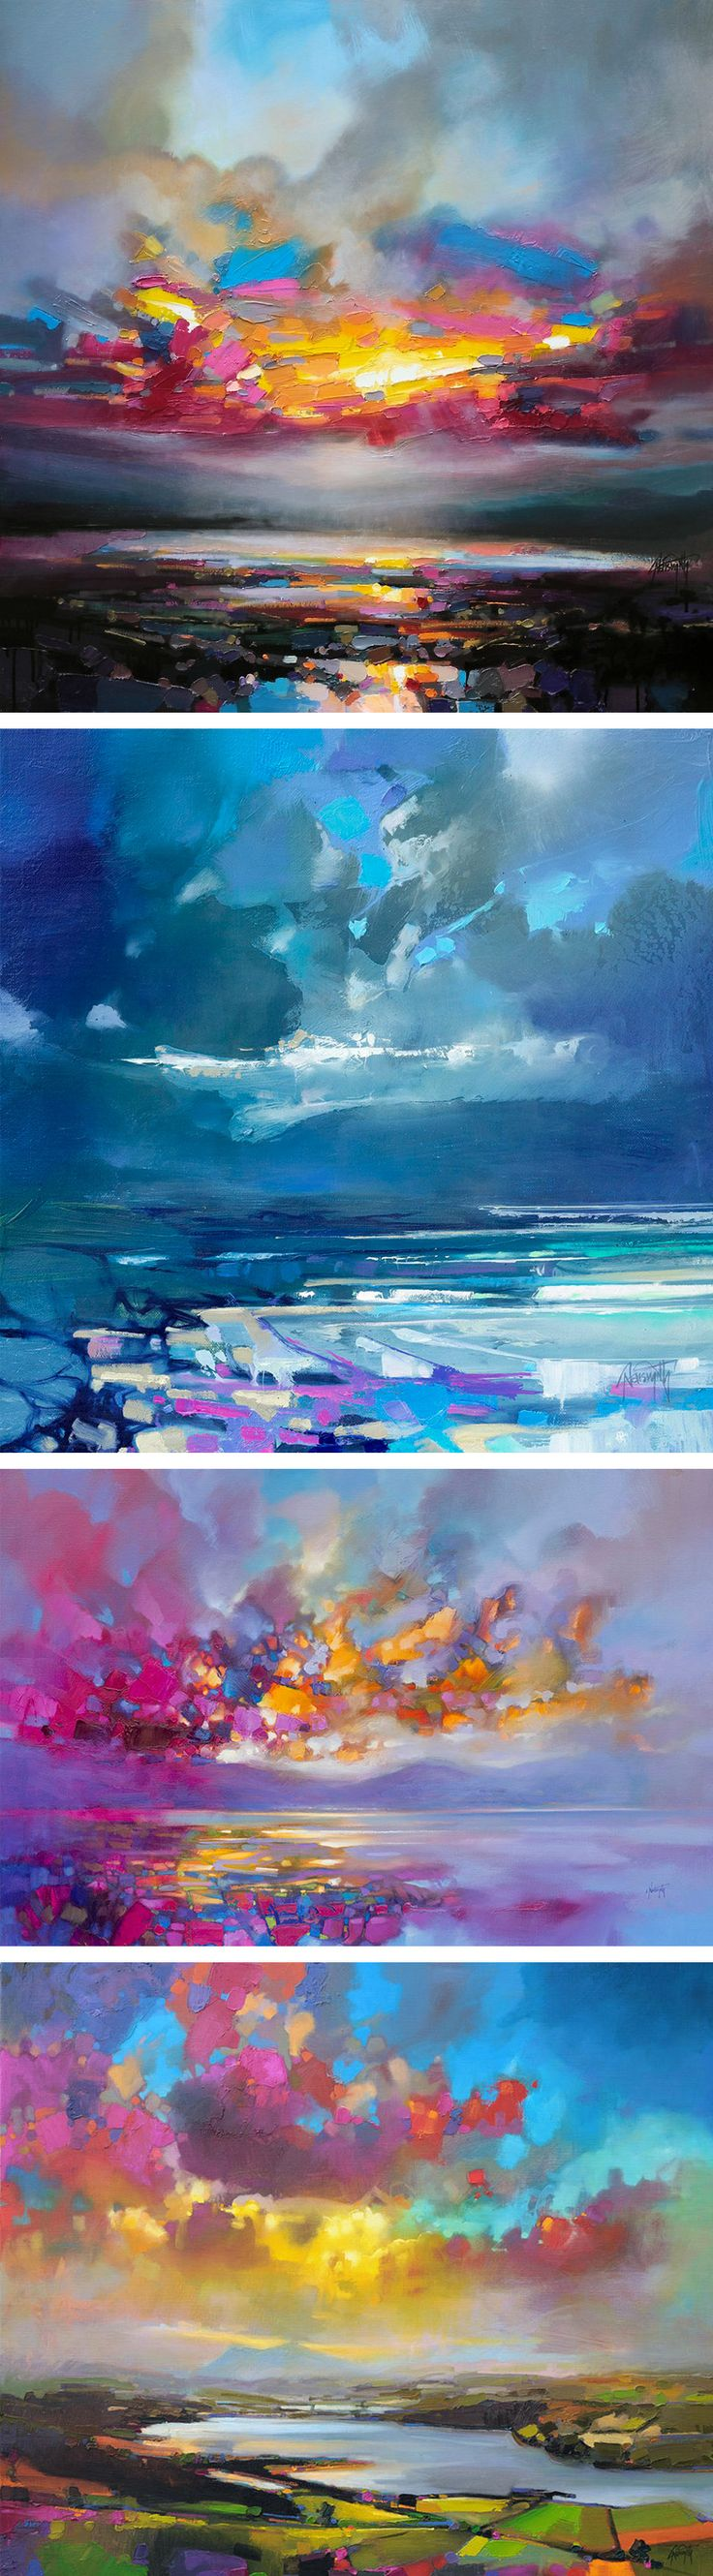 vibrant oil paintings of scottish landscapes by scott naismith - Oil Painting